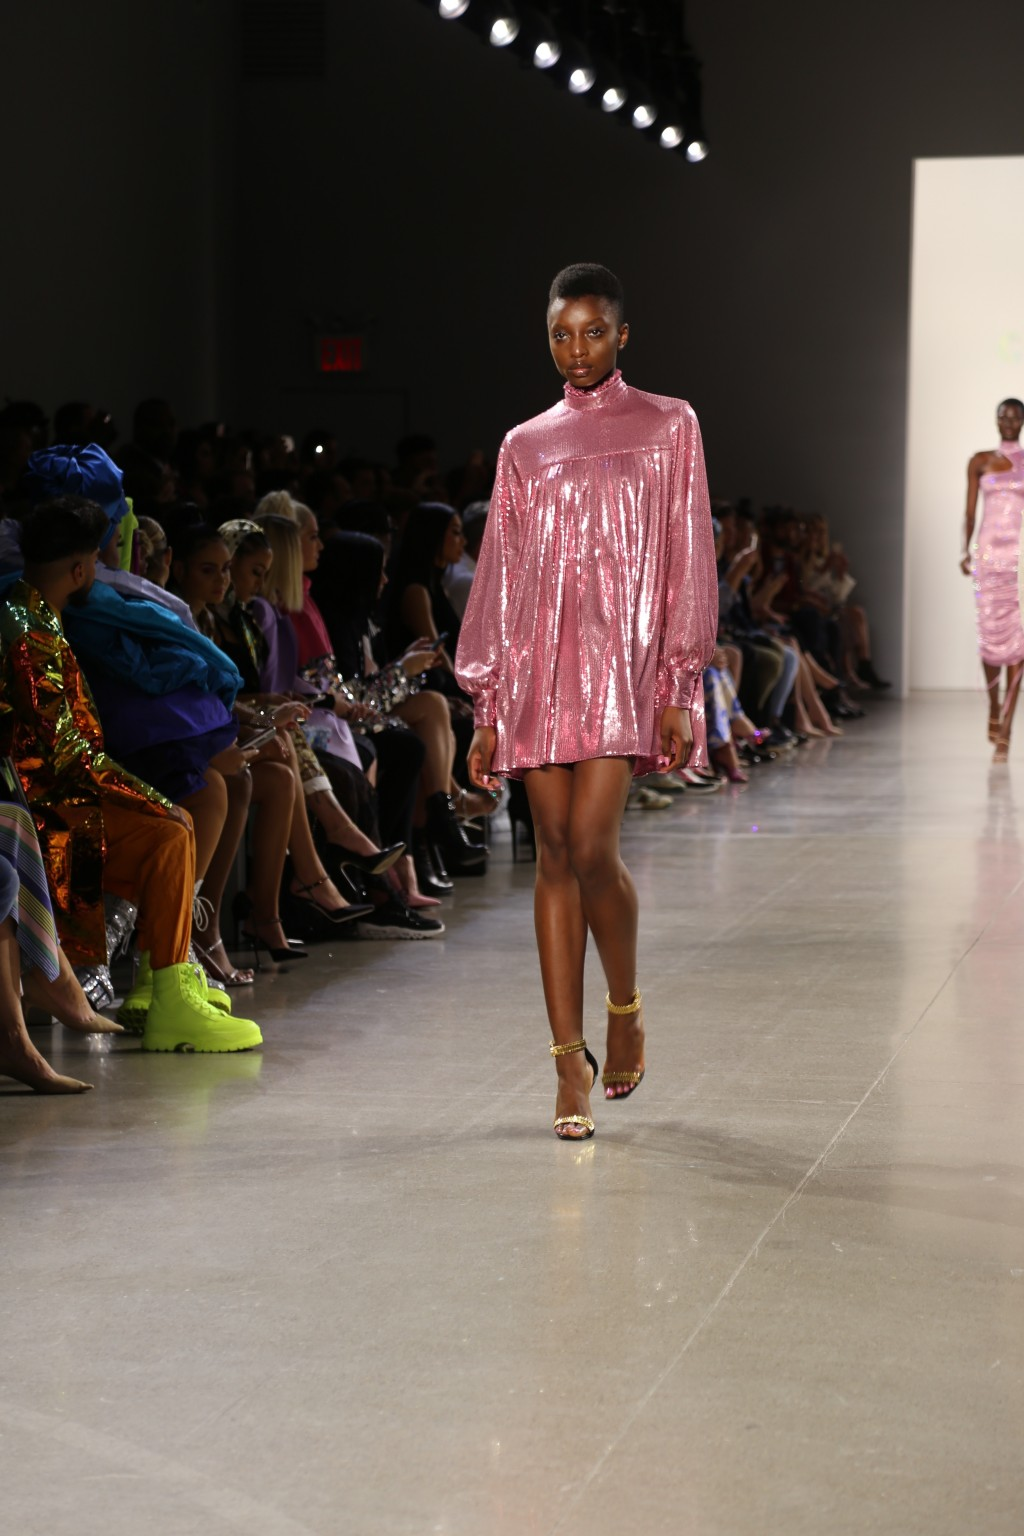 A model wears fashion from the Christian Cowan collection during Fashion Week in New York on Tuesday, Sept. 10, 2019. (AP Photo/Ragan Clark)